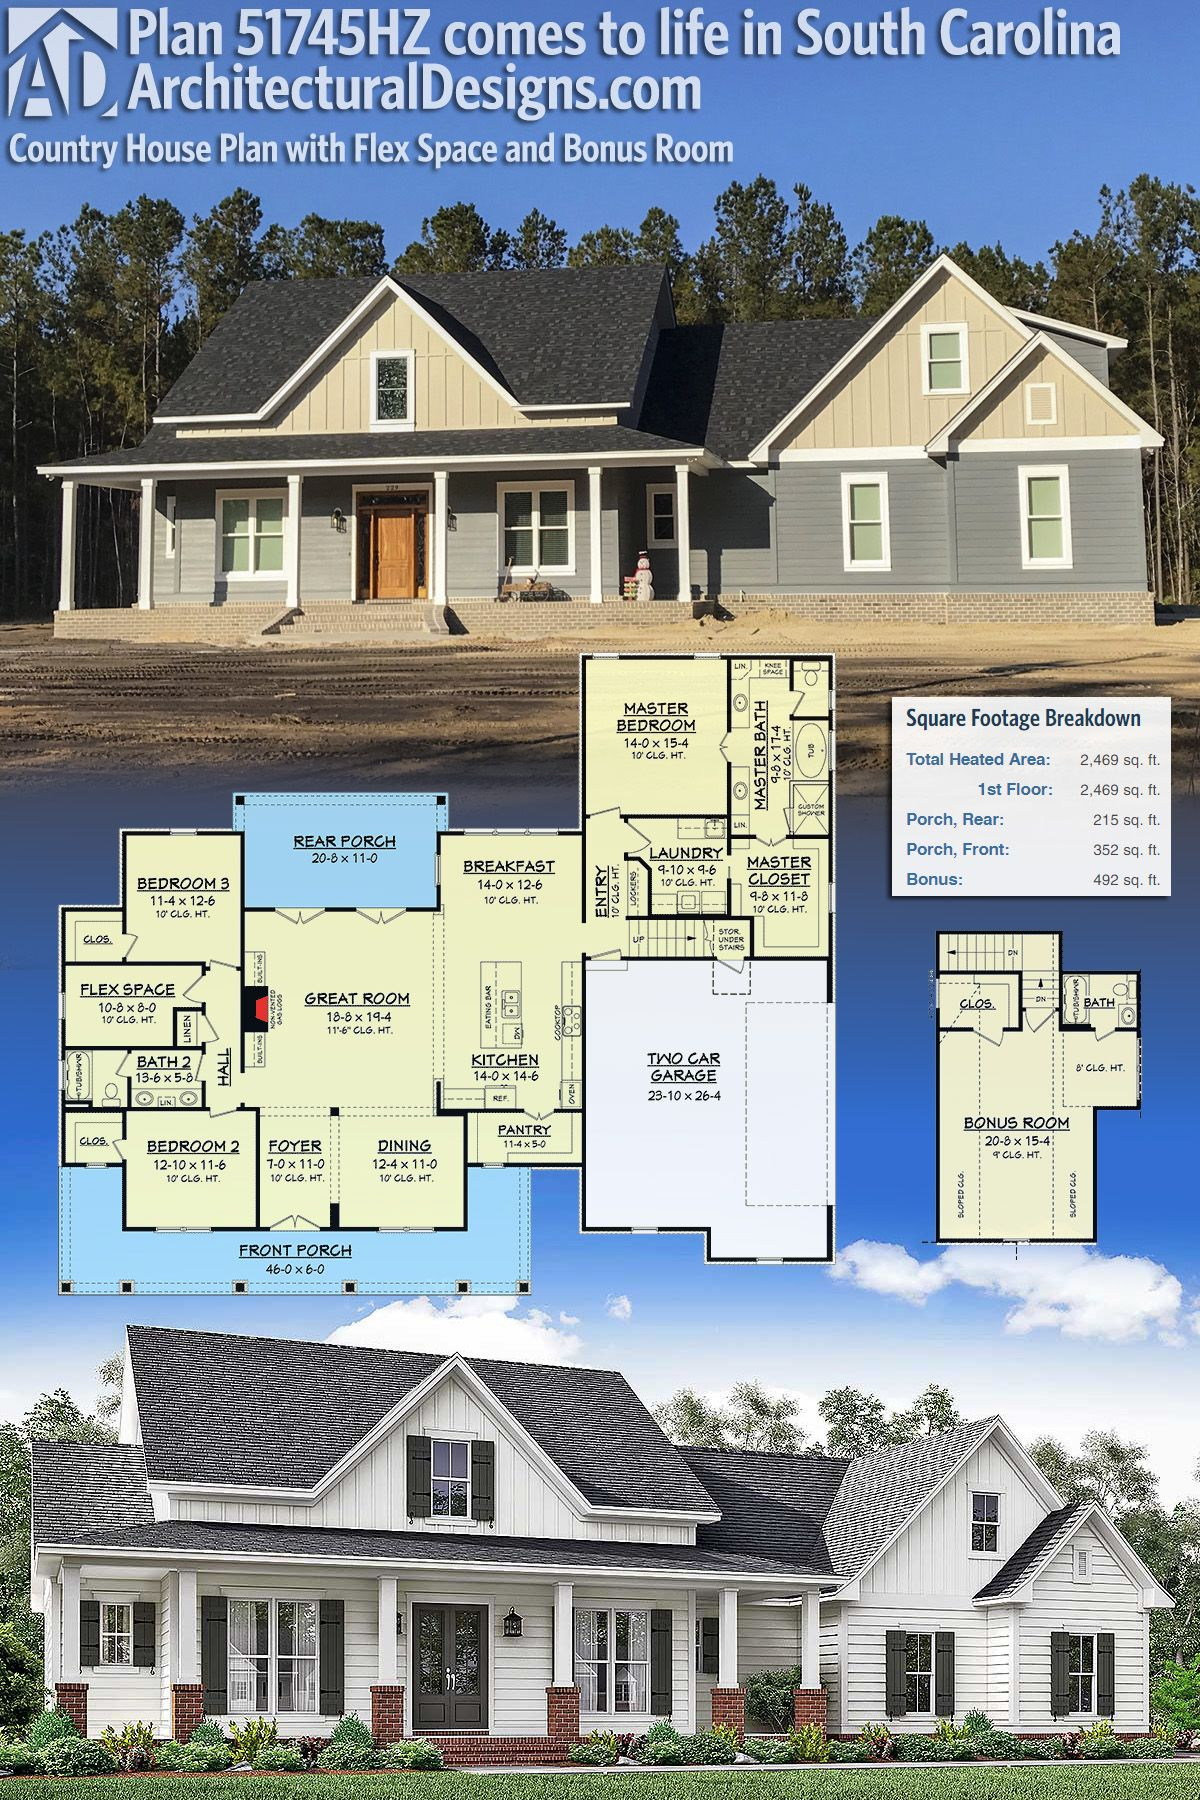 Our client built architectural designs modern farmhouse plan 51745hz in south carolina this house gives you 3 beds 2 baths and over 2400 square feet of